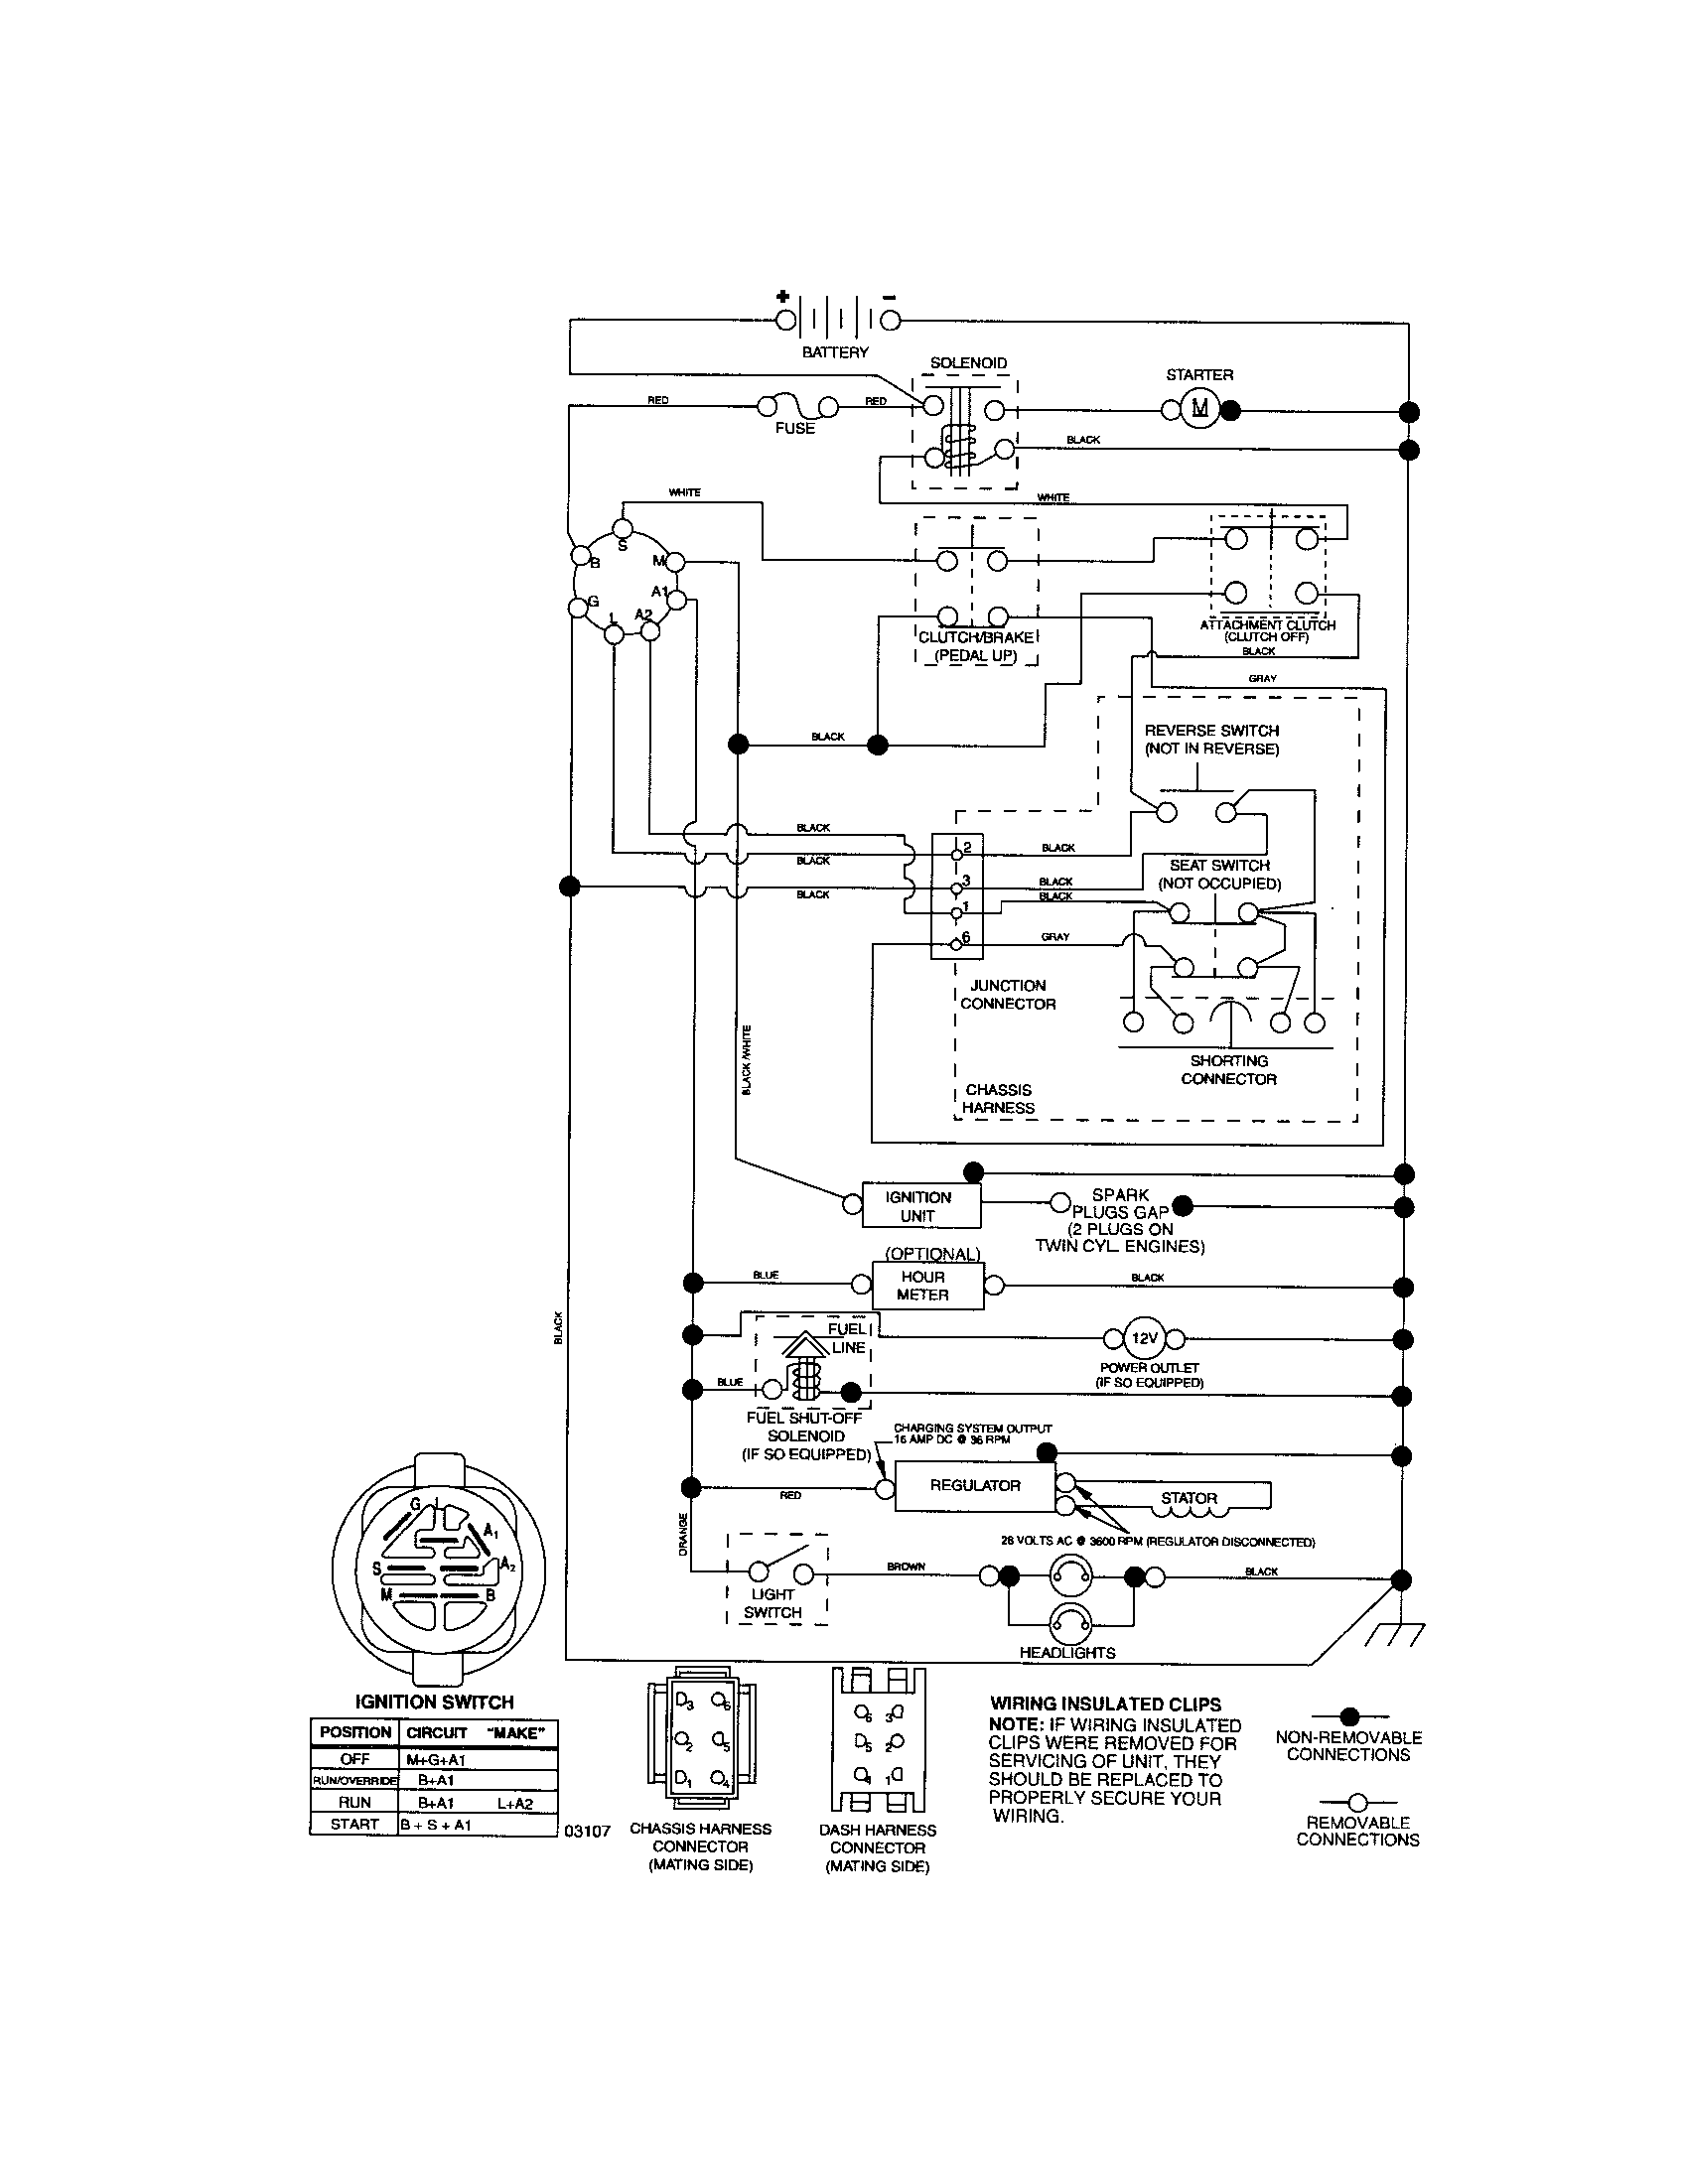 6af5f1447fd13c8443376822ddc1e105 craftsman riding mower electrical diagram wiring diagram need a wiring diagram at soozxer.org